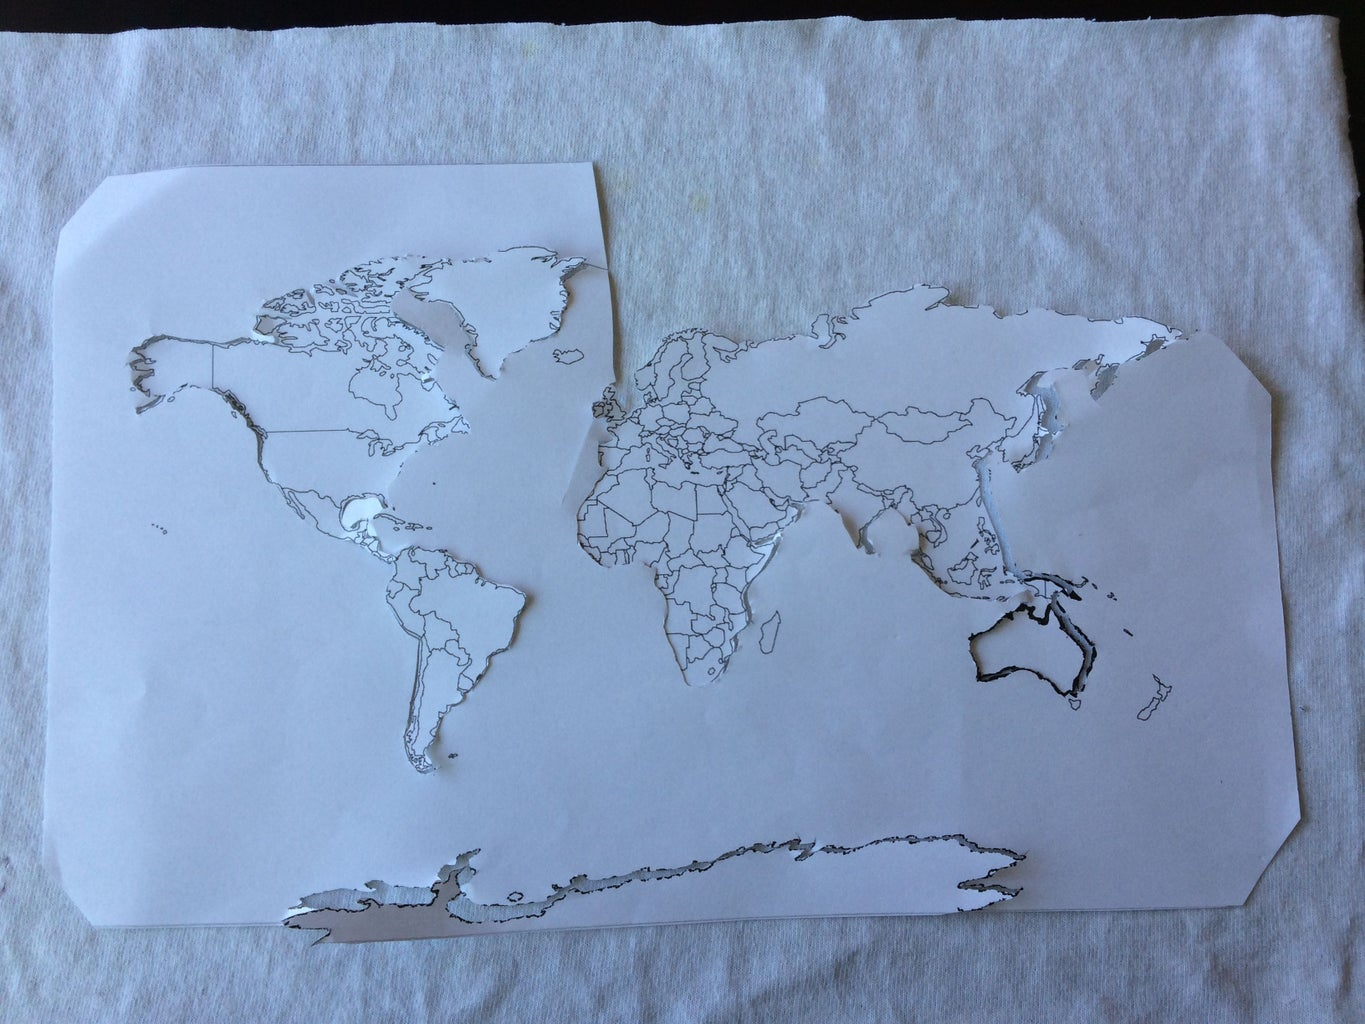 Cut Out Your Map